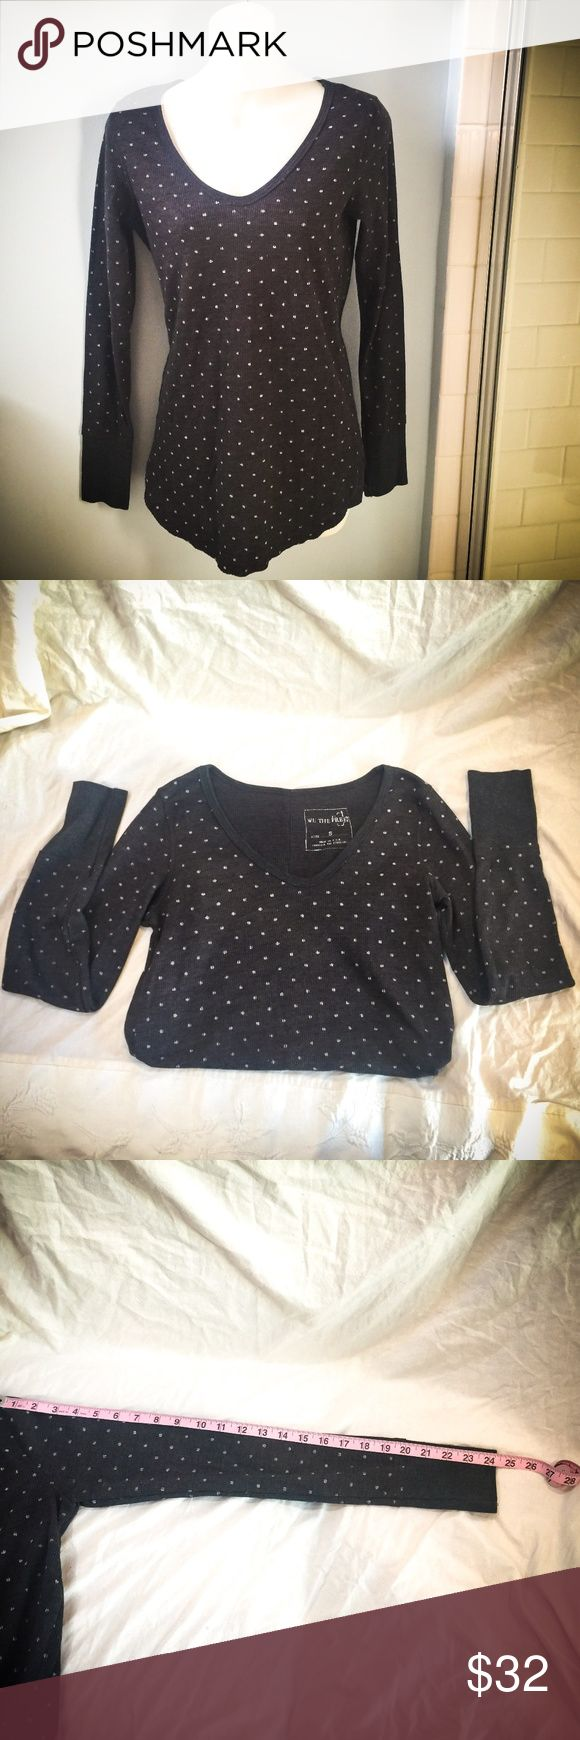 "Free People Long Sleeve Waffle Top EUC Free People gray 'waffle' textured long sleeve top with polka dots. Fabric is 50% cotton 50% poly. There are no holes or wear visible. I wore this with no problem even though I'm usually a M - it's long and slim (see pics with measurements). The polka dots have a variegated ""texture"" - as if distressed - this was intentional, the shirt came this way new from the store. It looks cool because then the polka dots don't look clownish like they would if they…"